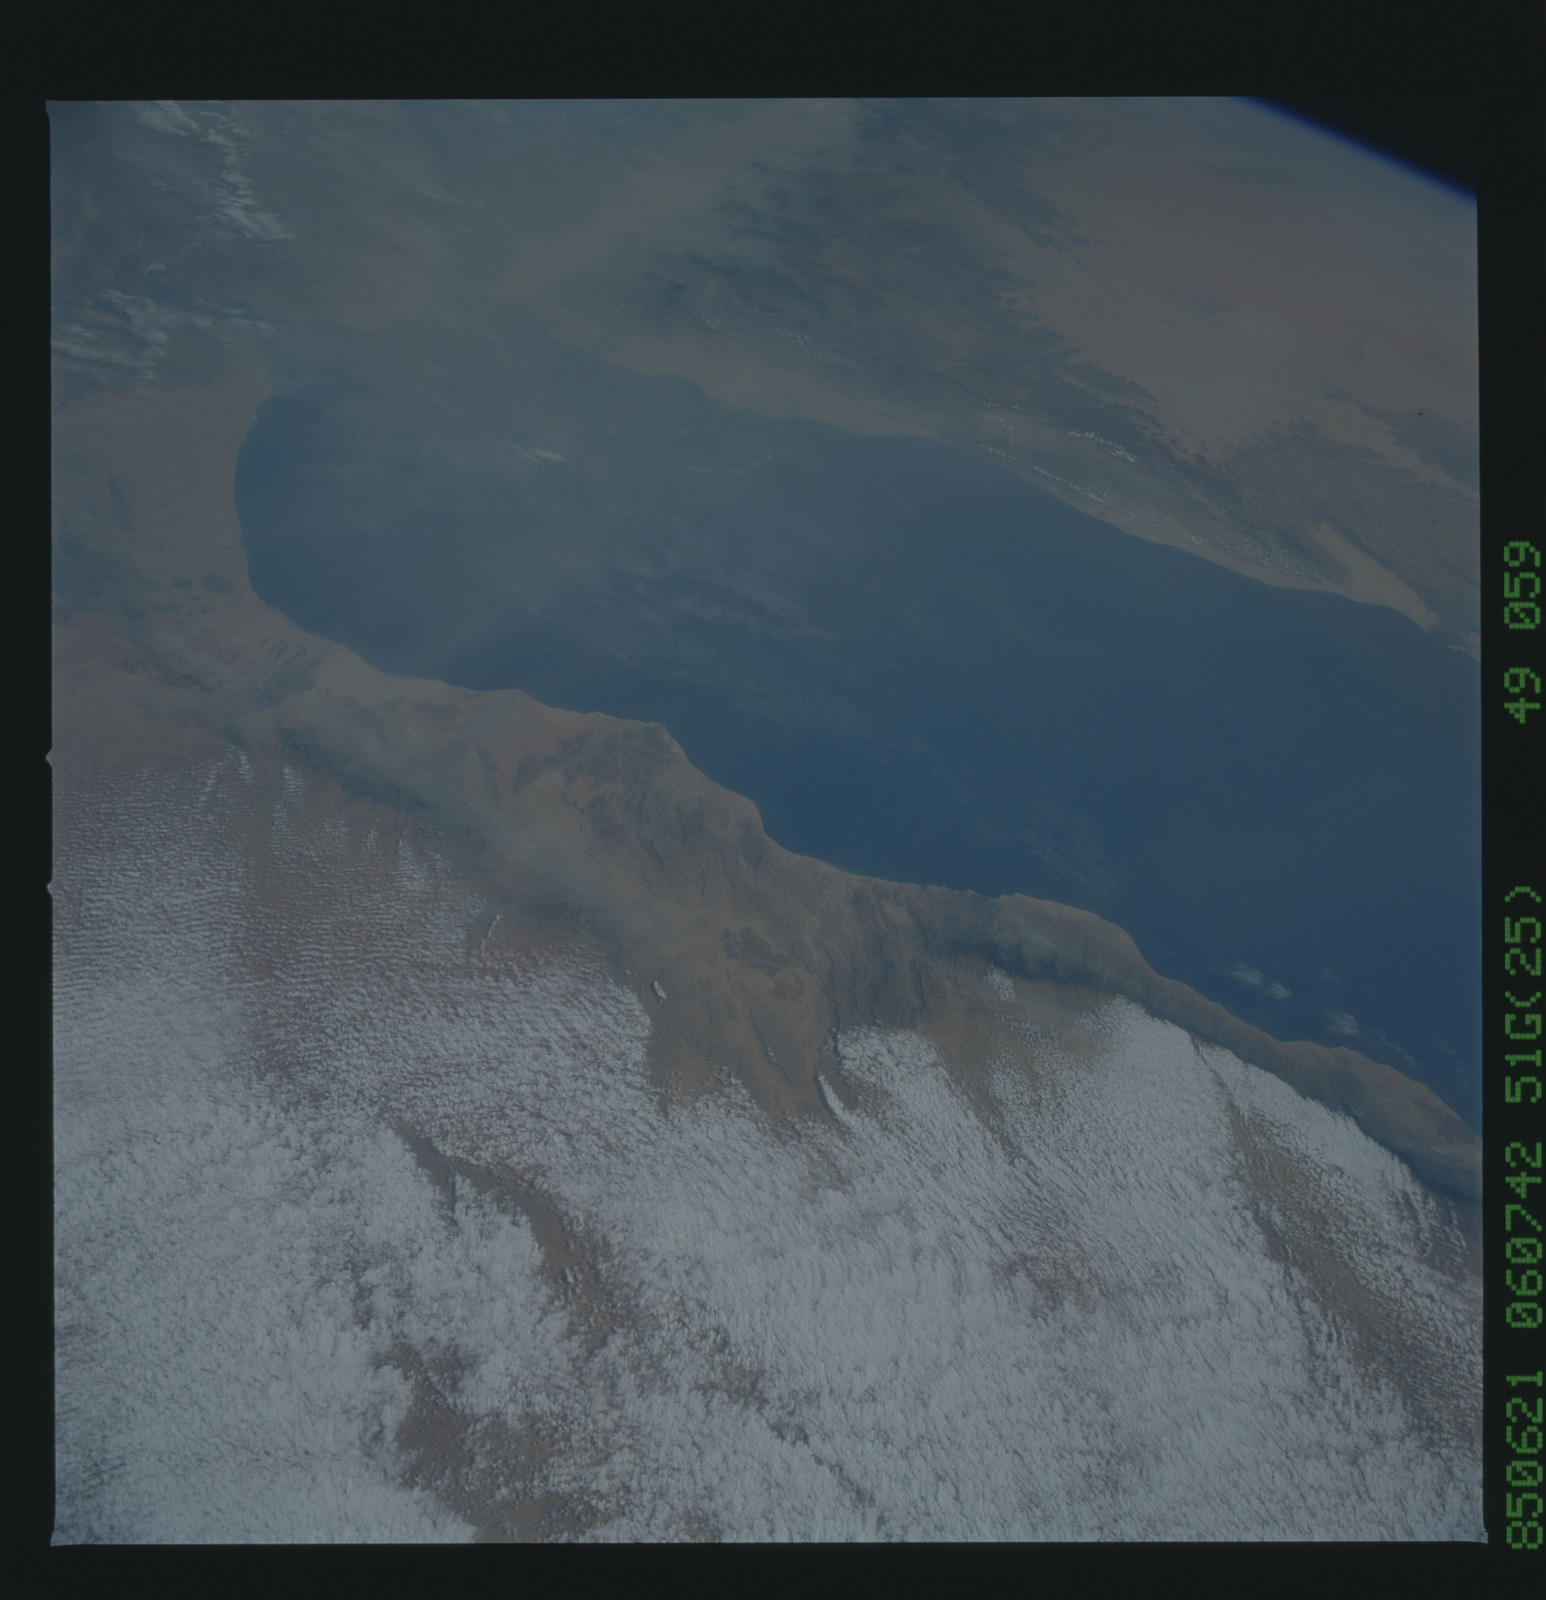 51G-49-059 - STS-51G - STS-51G earth observations